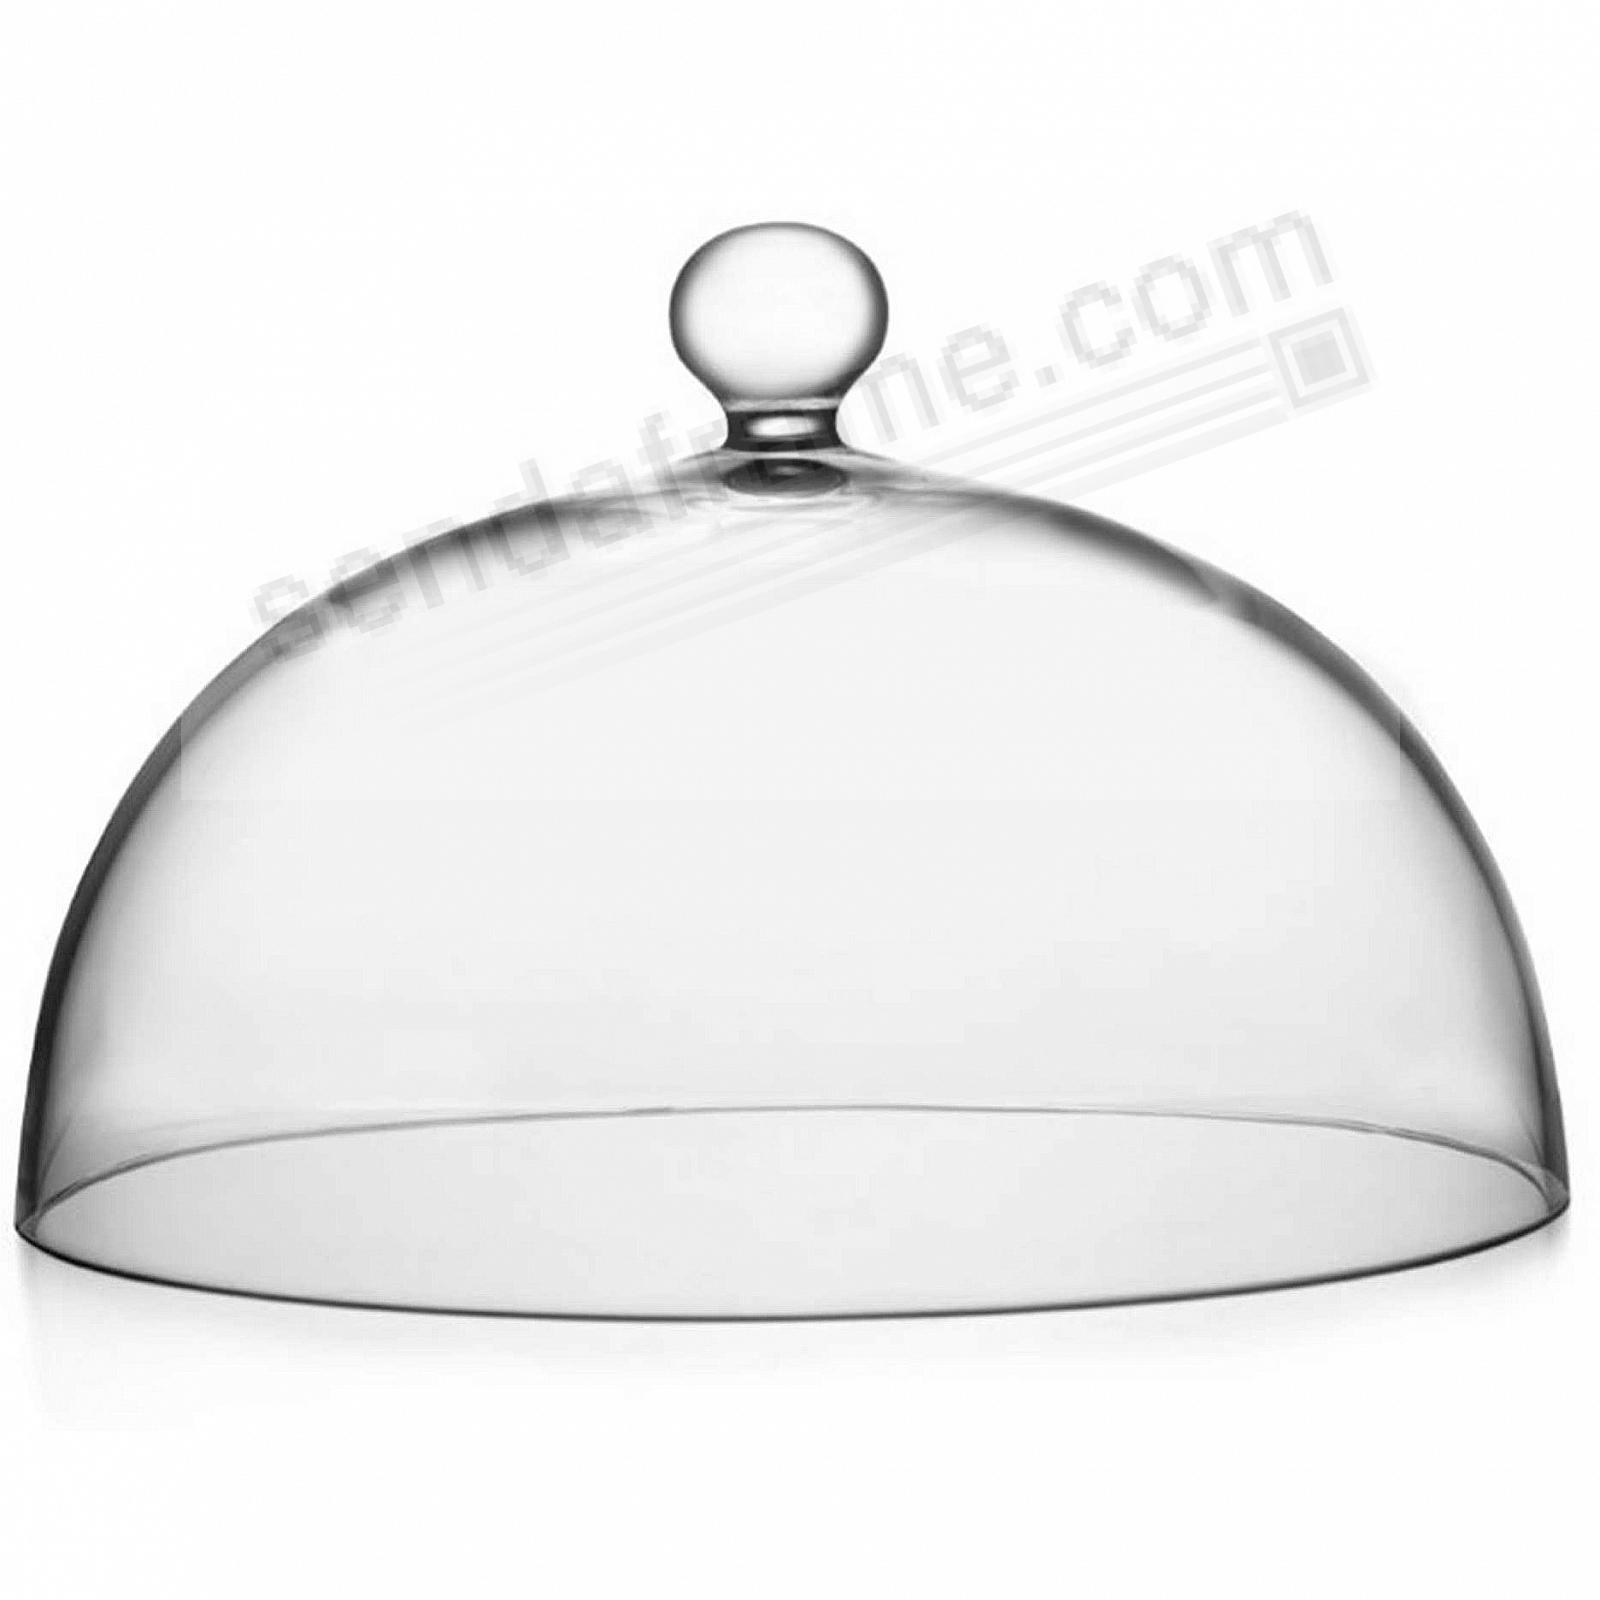 The MODERNE GLASS 11-inch CAKE DOME by Nambe®